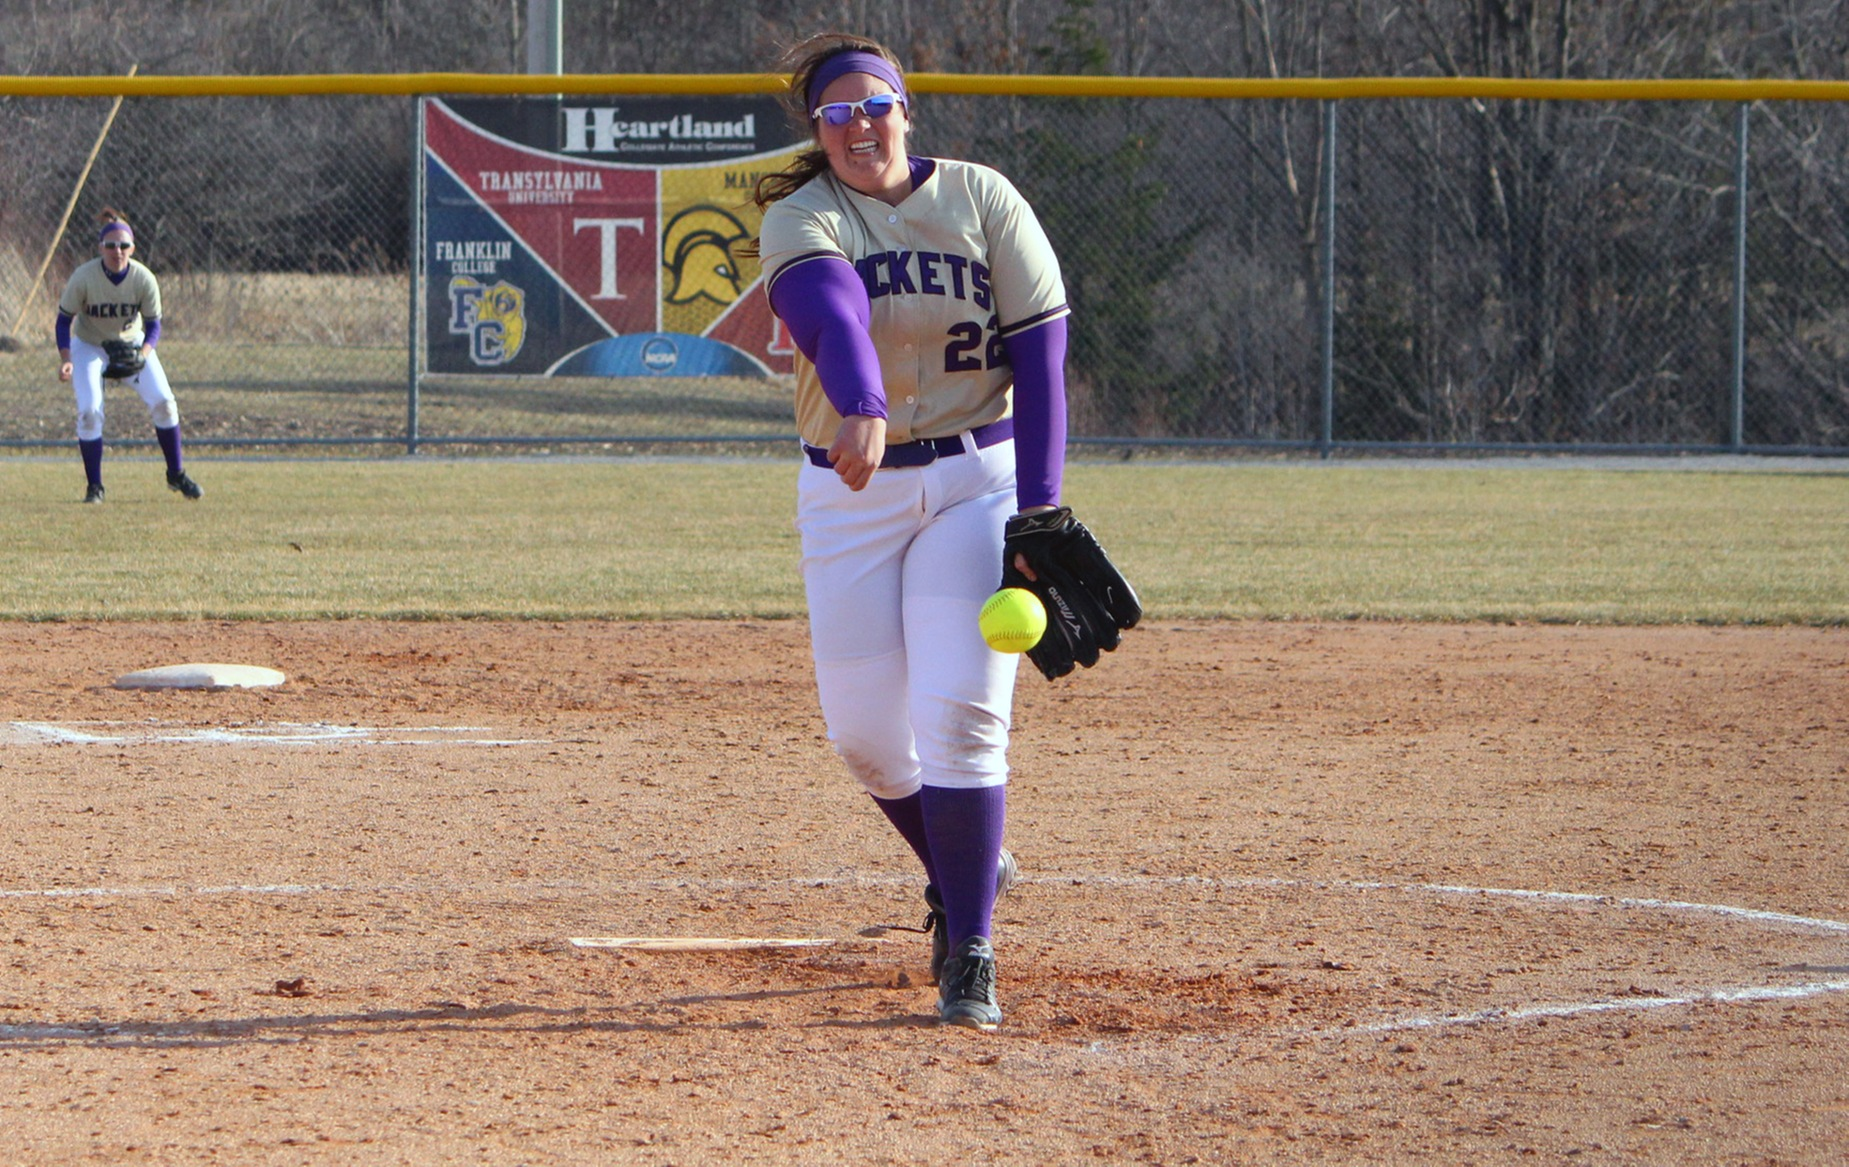 DC splits with Denison in Sunday doubleheader